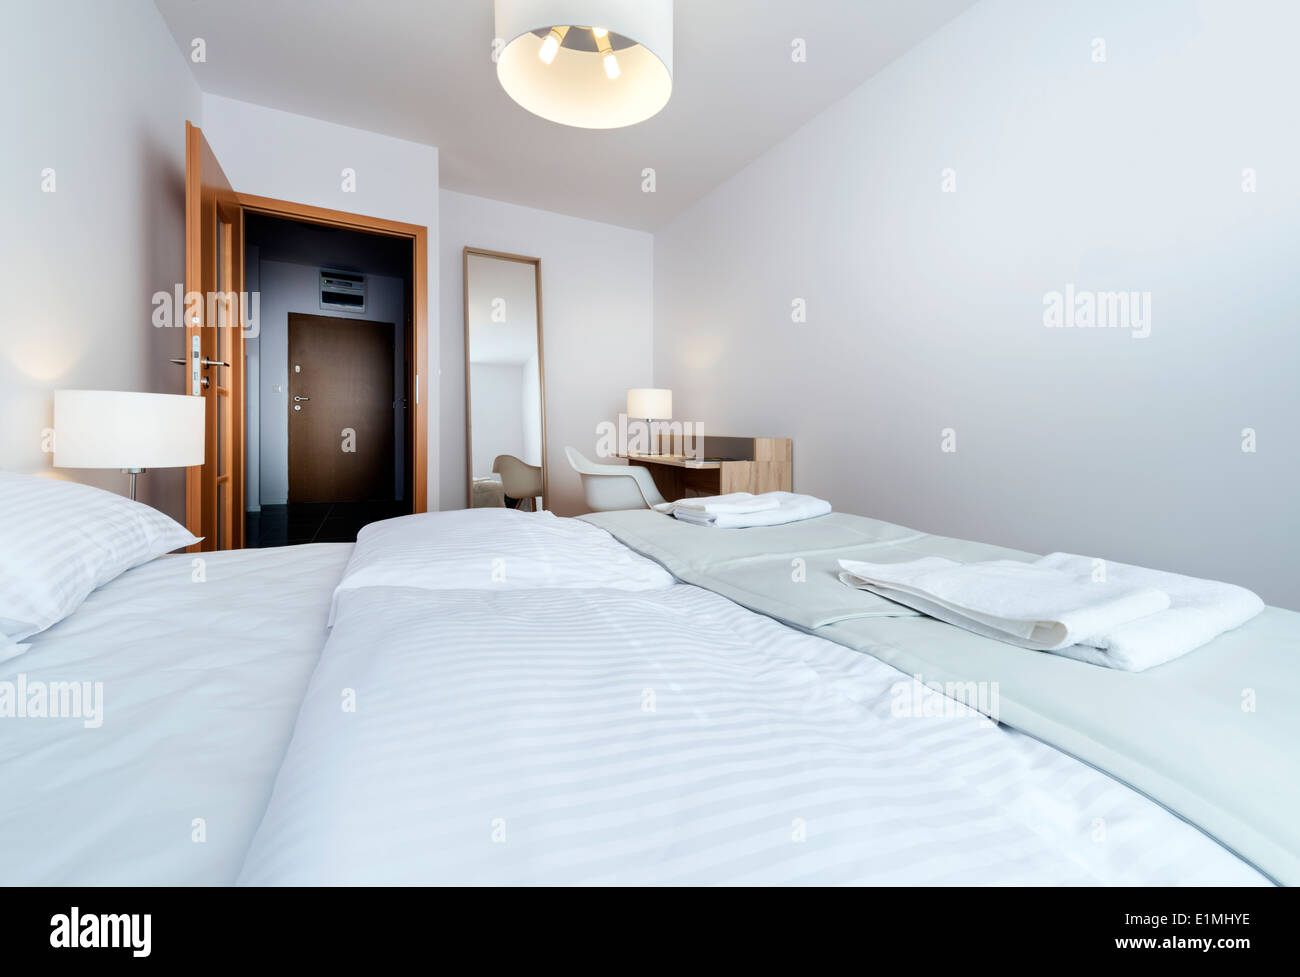 Bad Design Modern Double Bad In Modern Interior Design Room In White Stock Photo